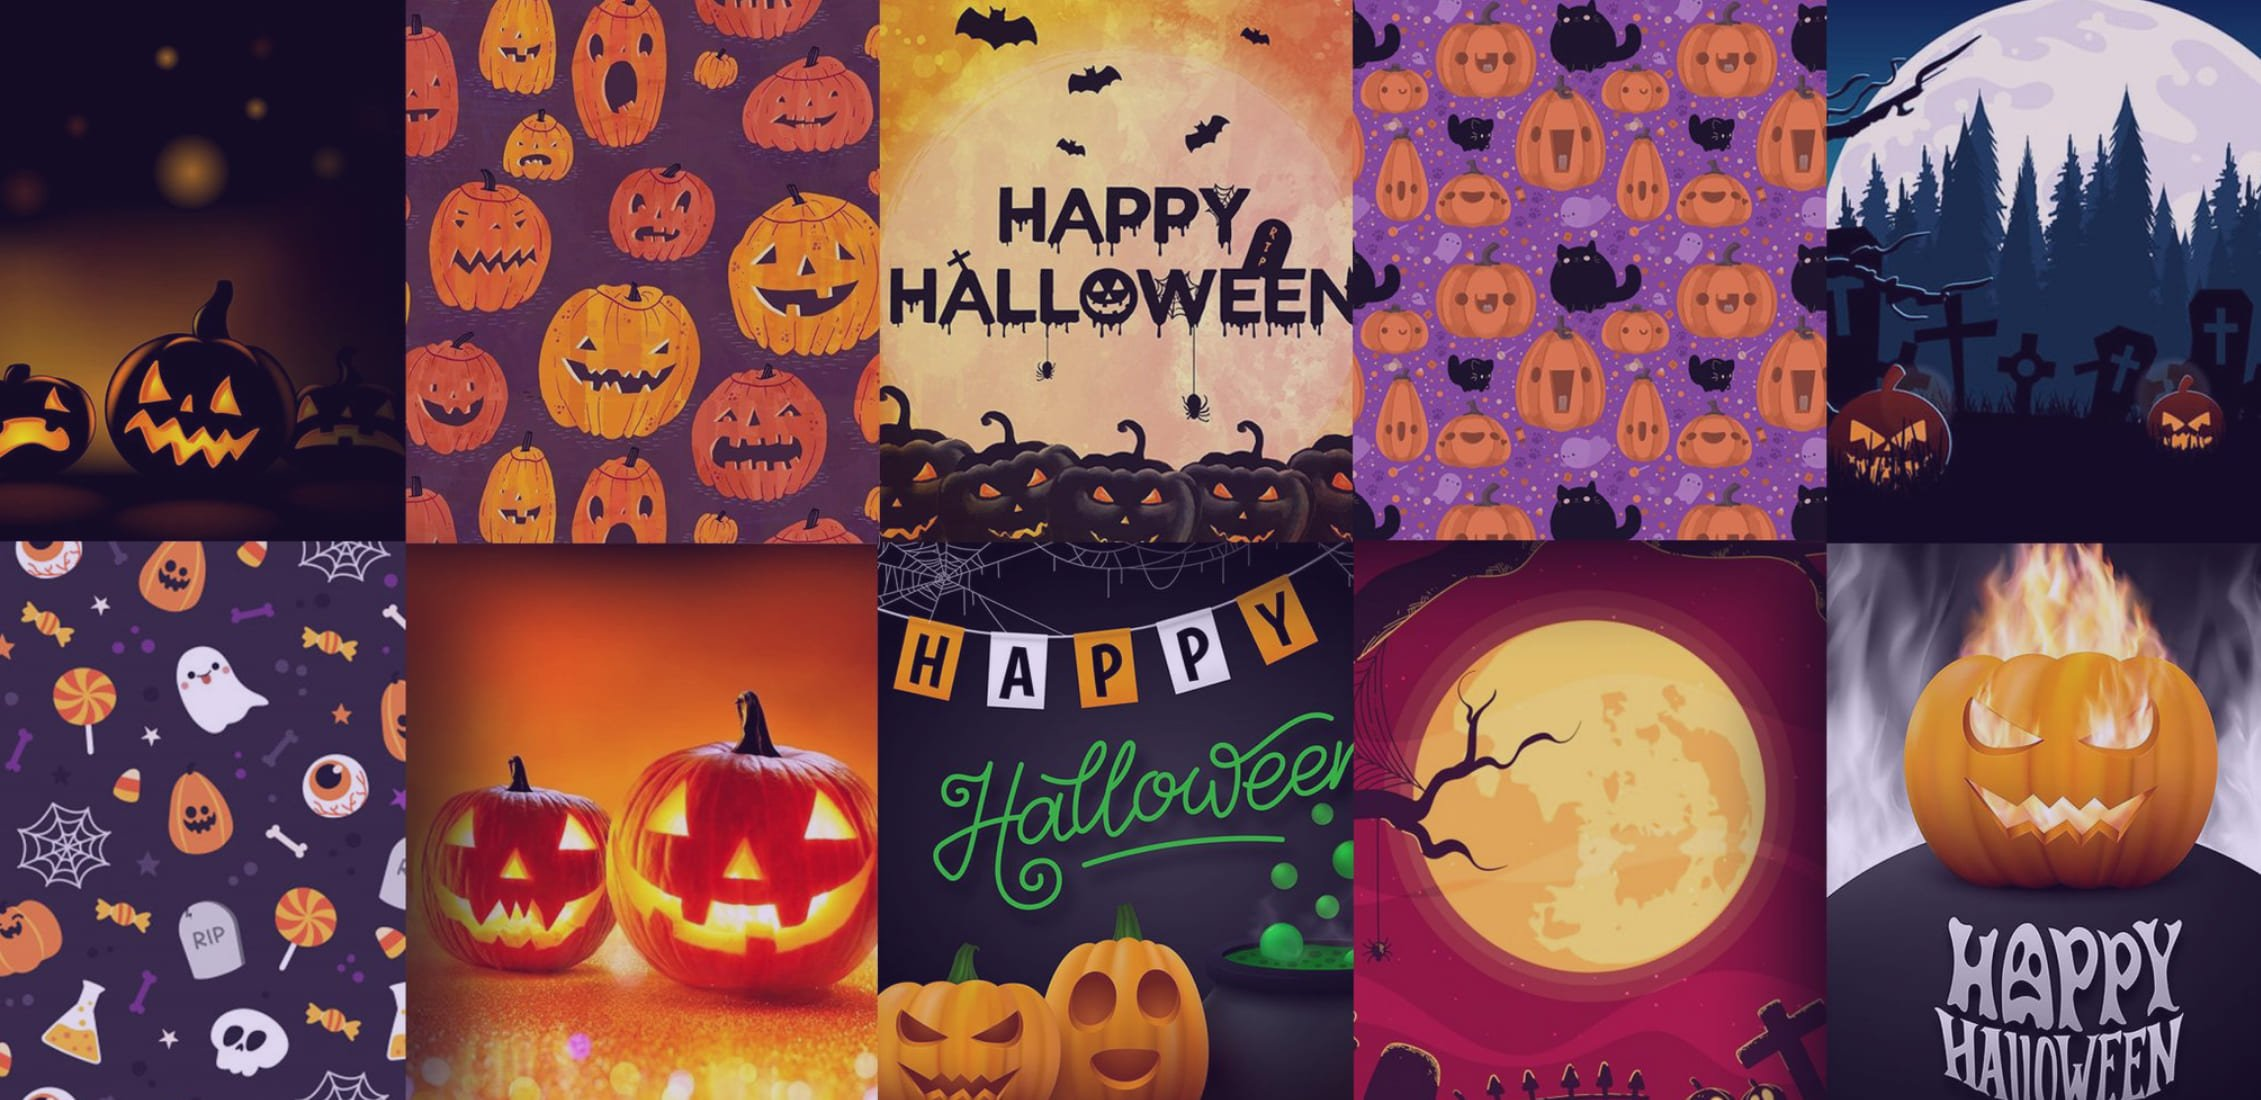 Some examples of cool Halloween backgrounds.